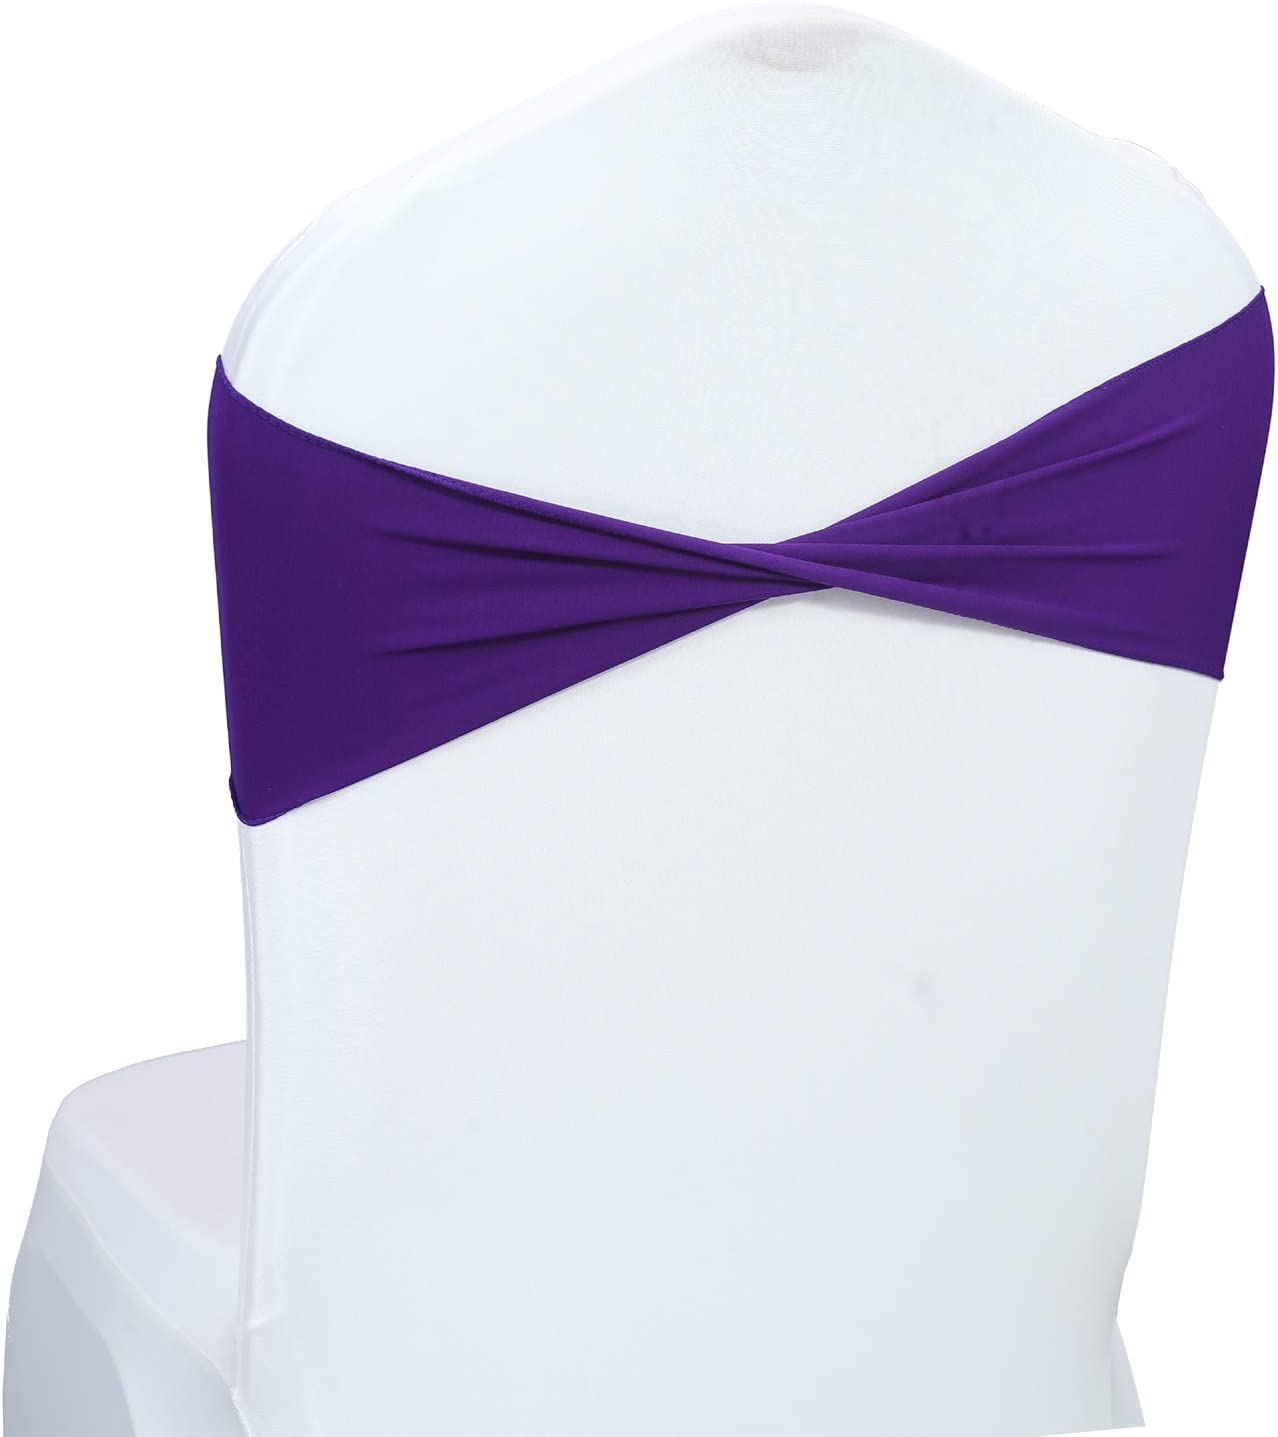 mds Pack of 100 PCS Factory outlet Spandex Wedding Tie Dallas Mall Bow f Sashes Chair Bands